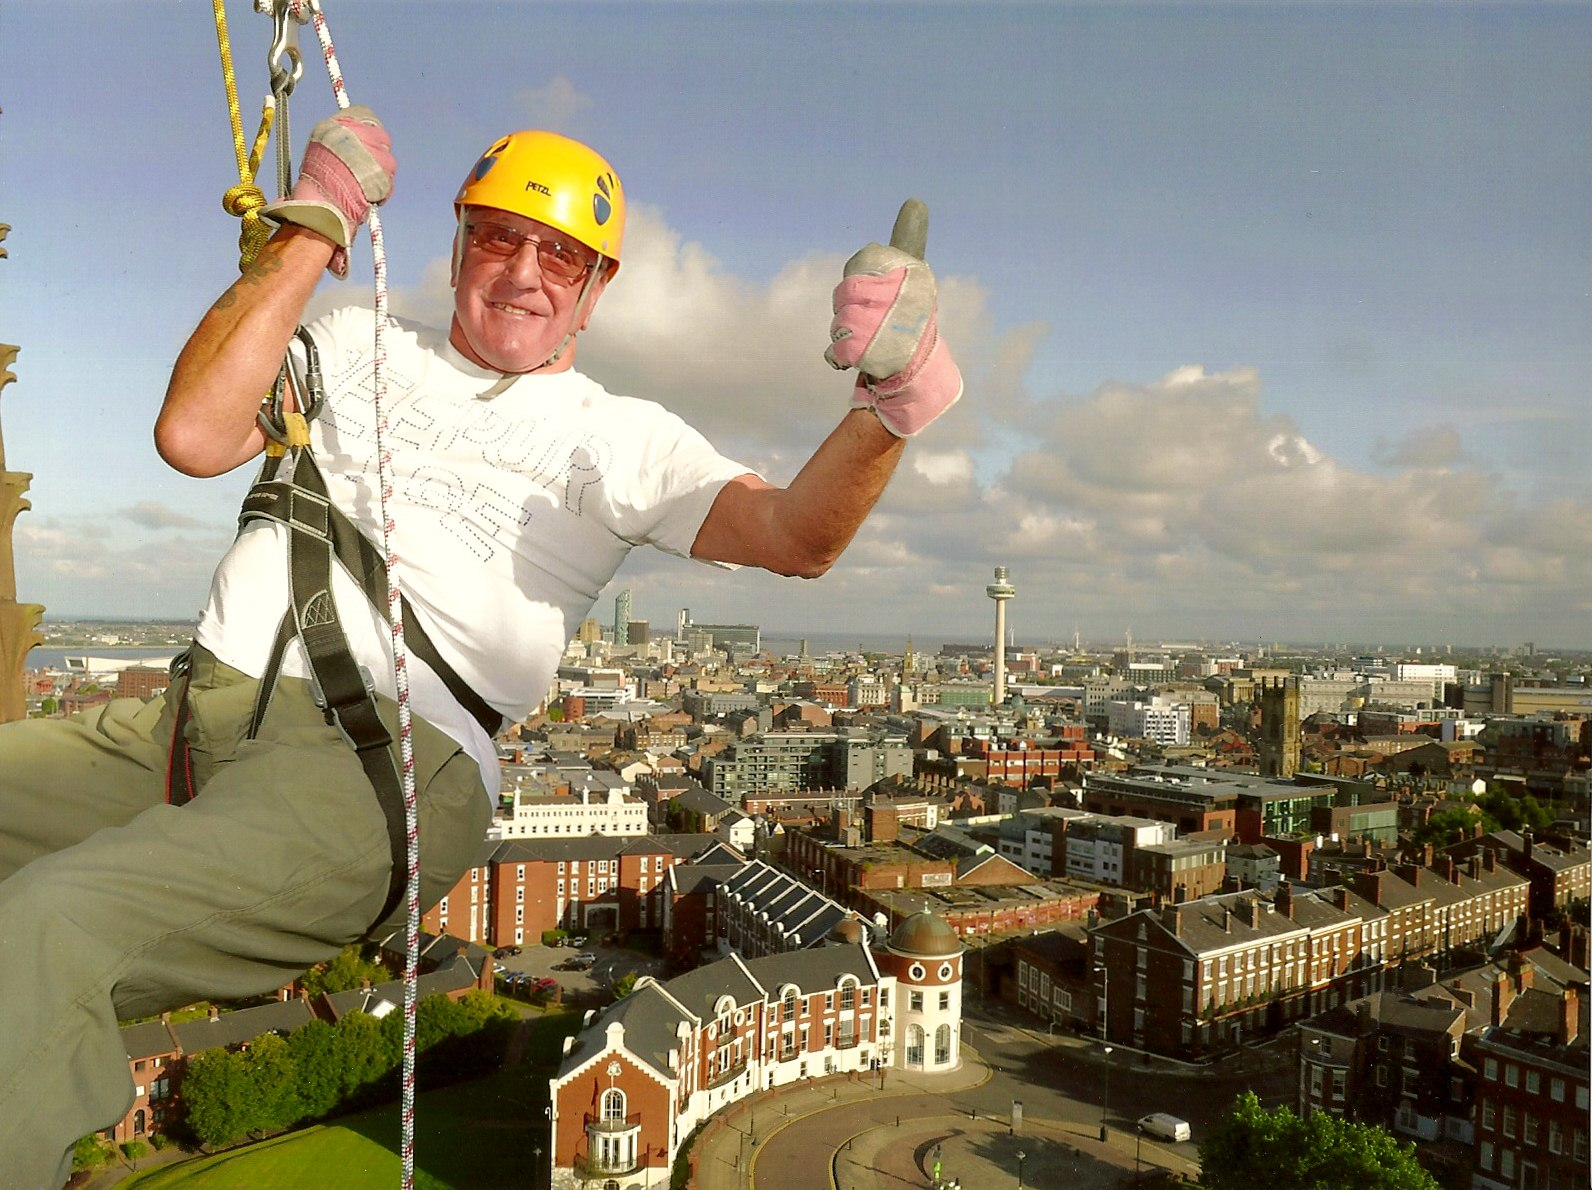 Ken Porter on his descent down Liverpool Cathedral to fundraise for Sreepur charity